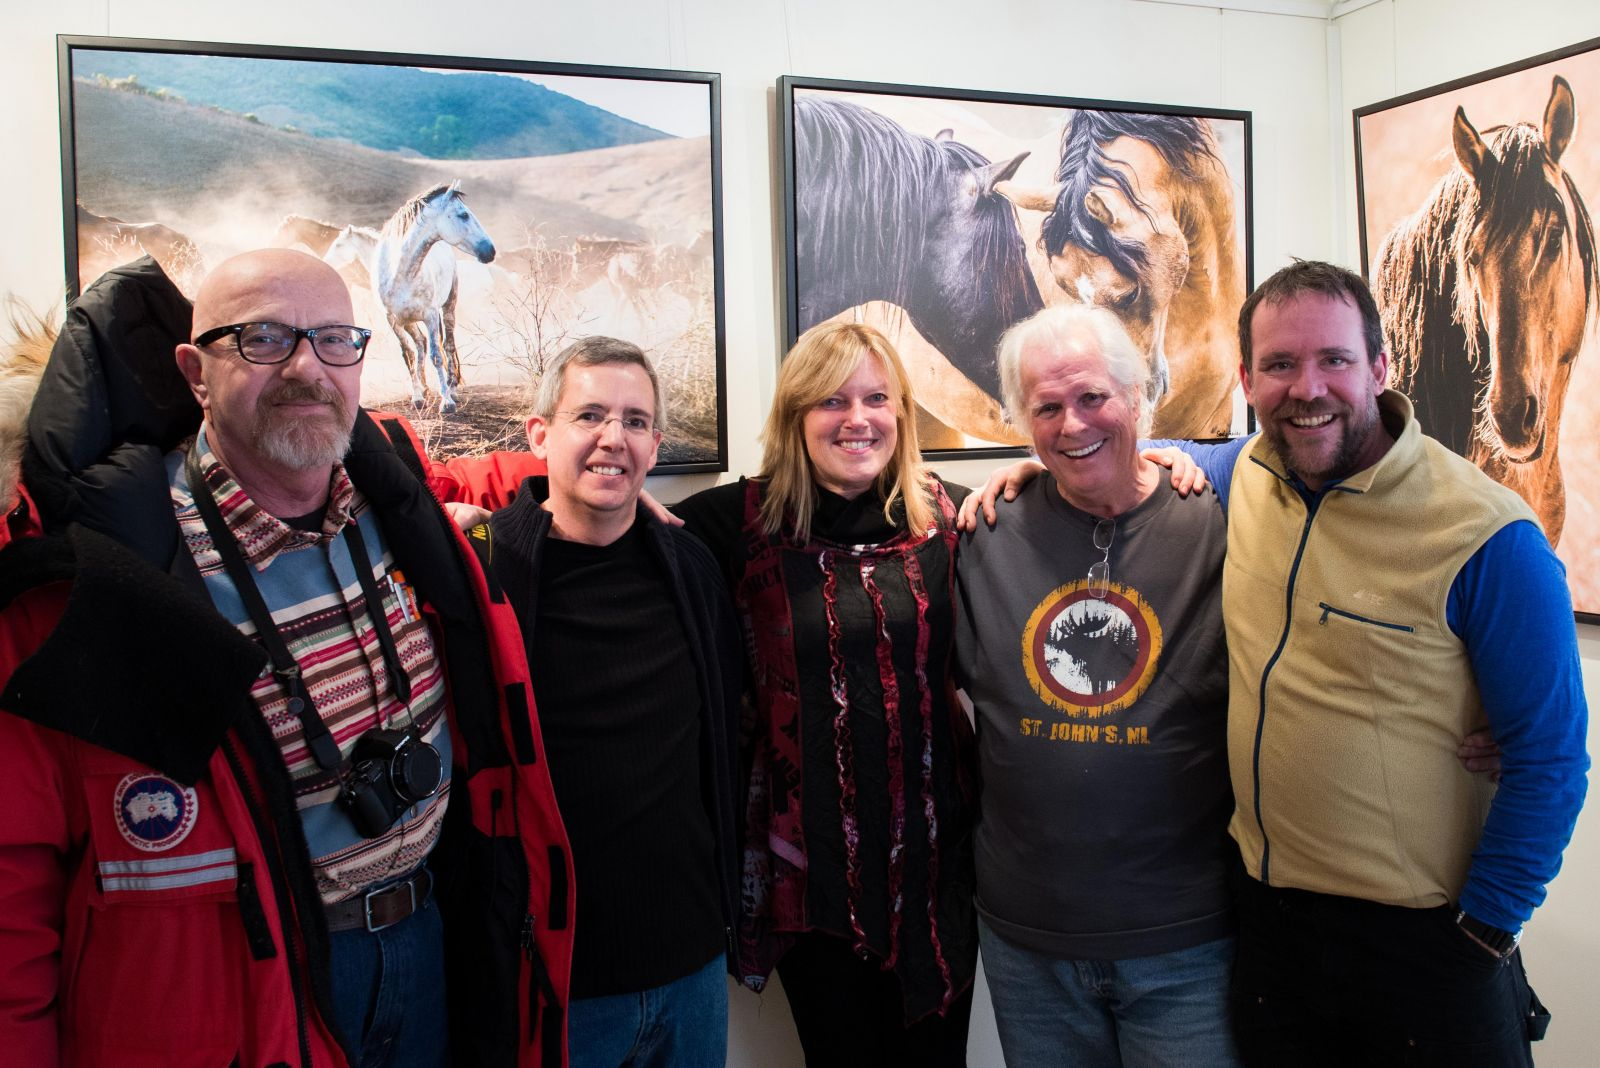 Some of the finest photographers I know stopped by! And they are great friends too! (left to right) Peter Waiser, Jean Labelle, me, John Rowlands, Harry Nowell